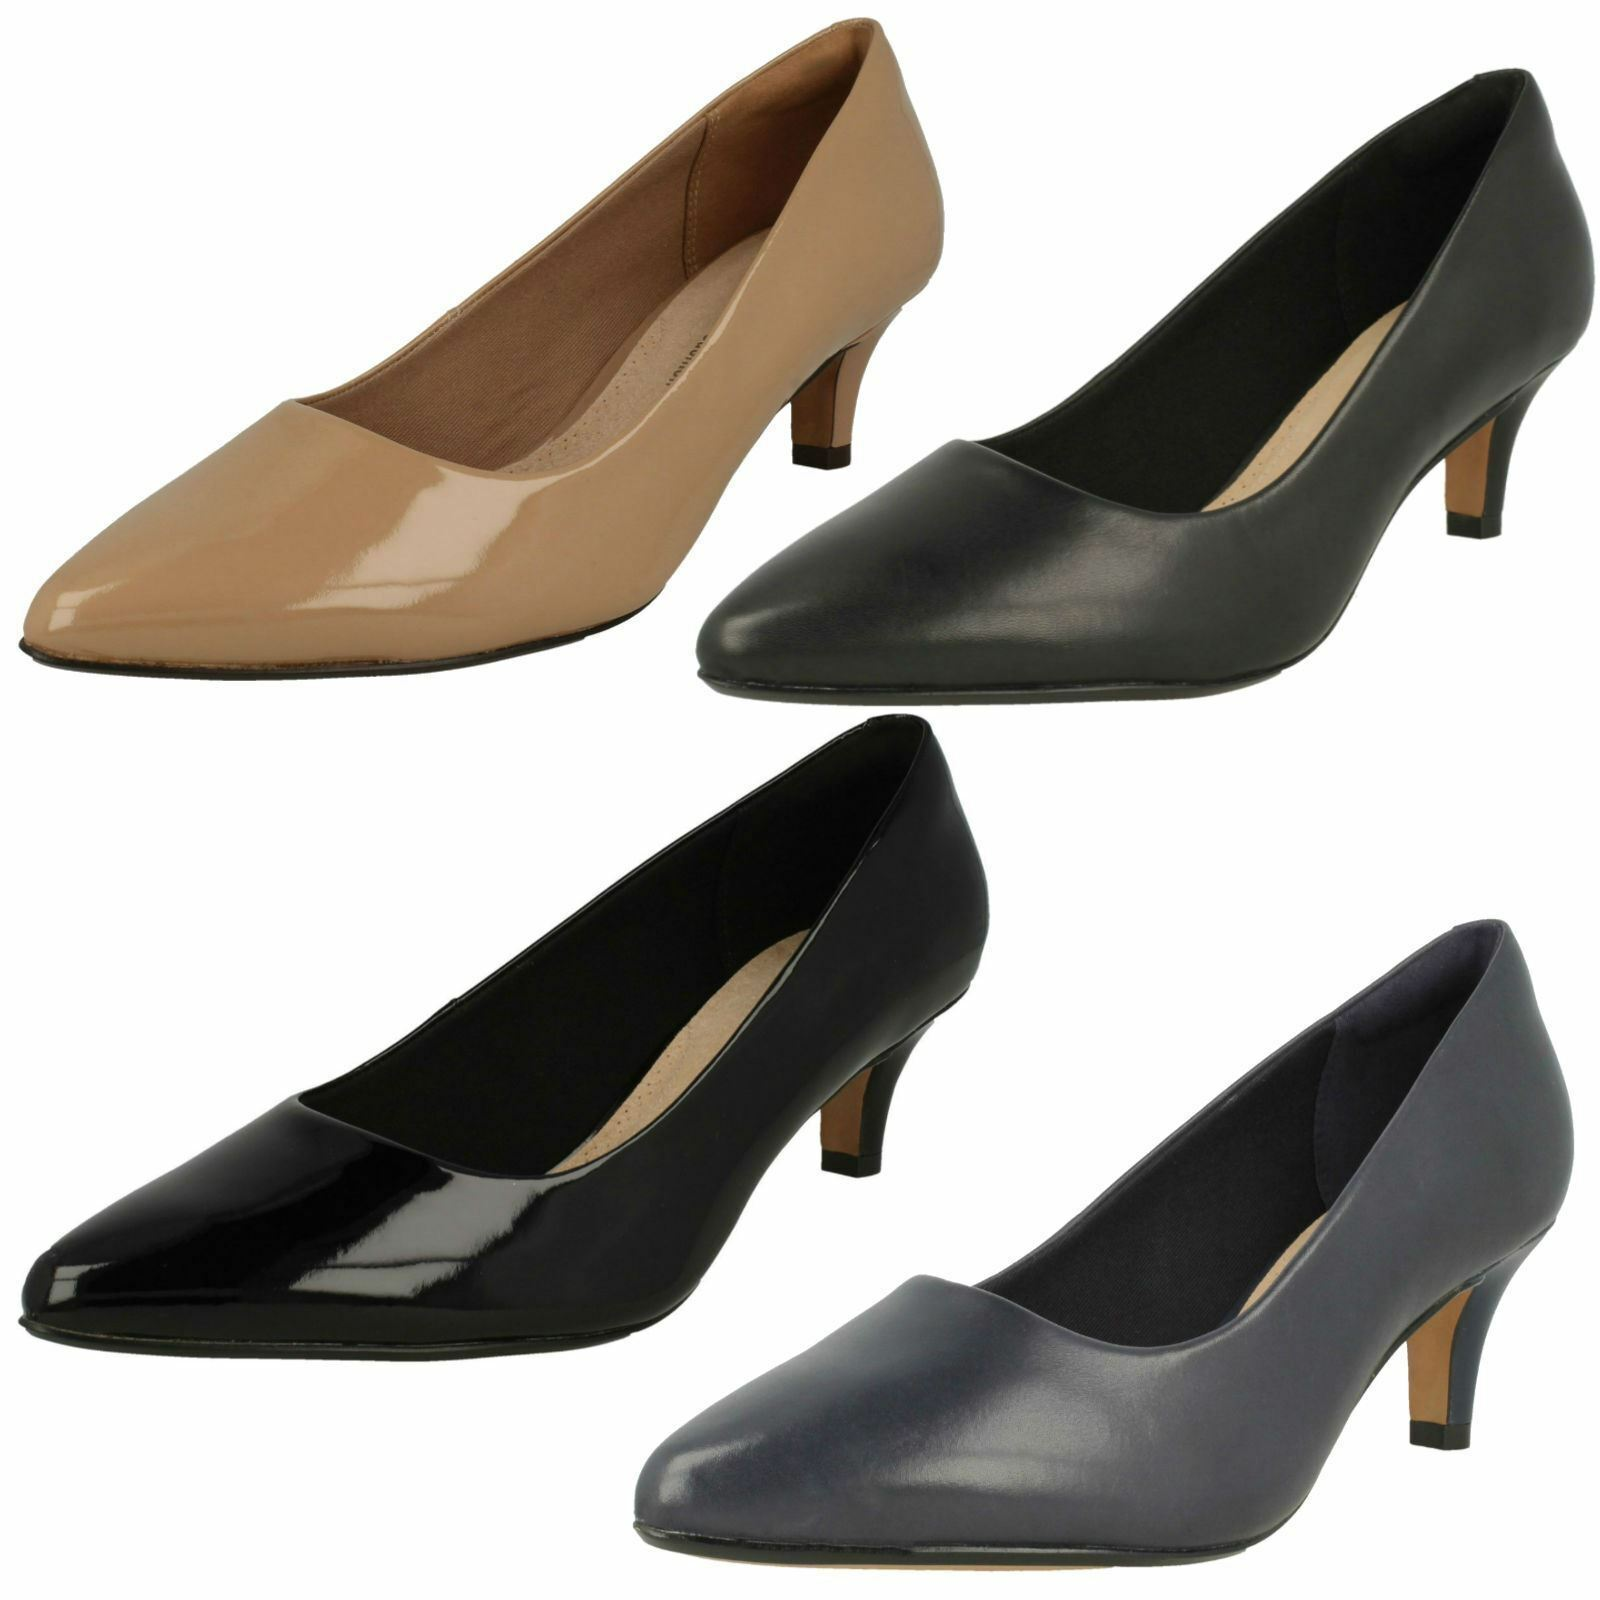 Man/Woman Clarks Ladies Court Shoes 'Linva Jerica' Innovative design Let our products go to the world Acknowledgement feedback